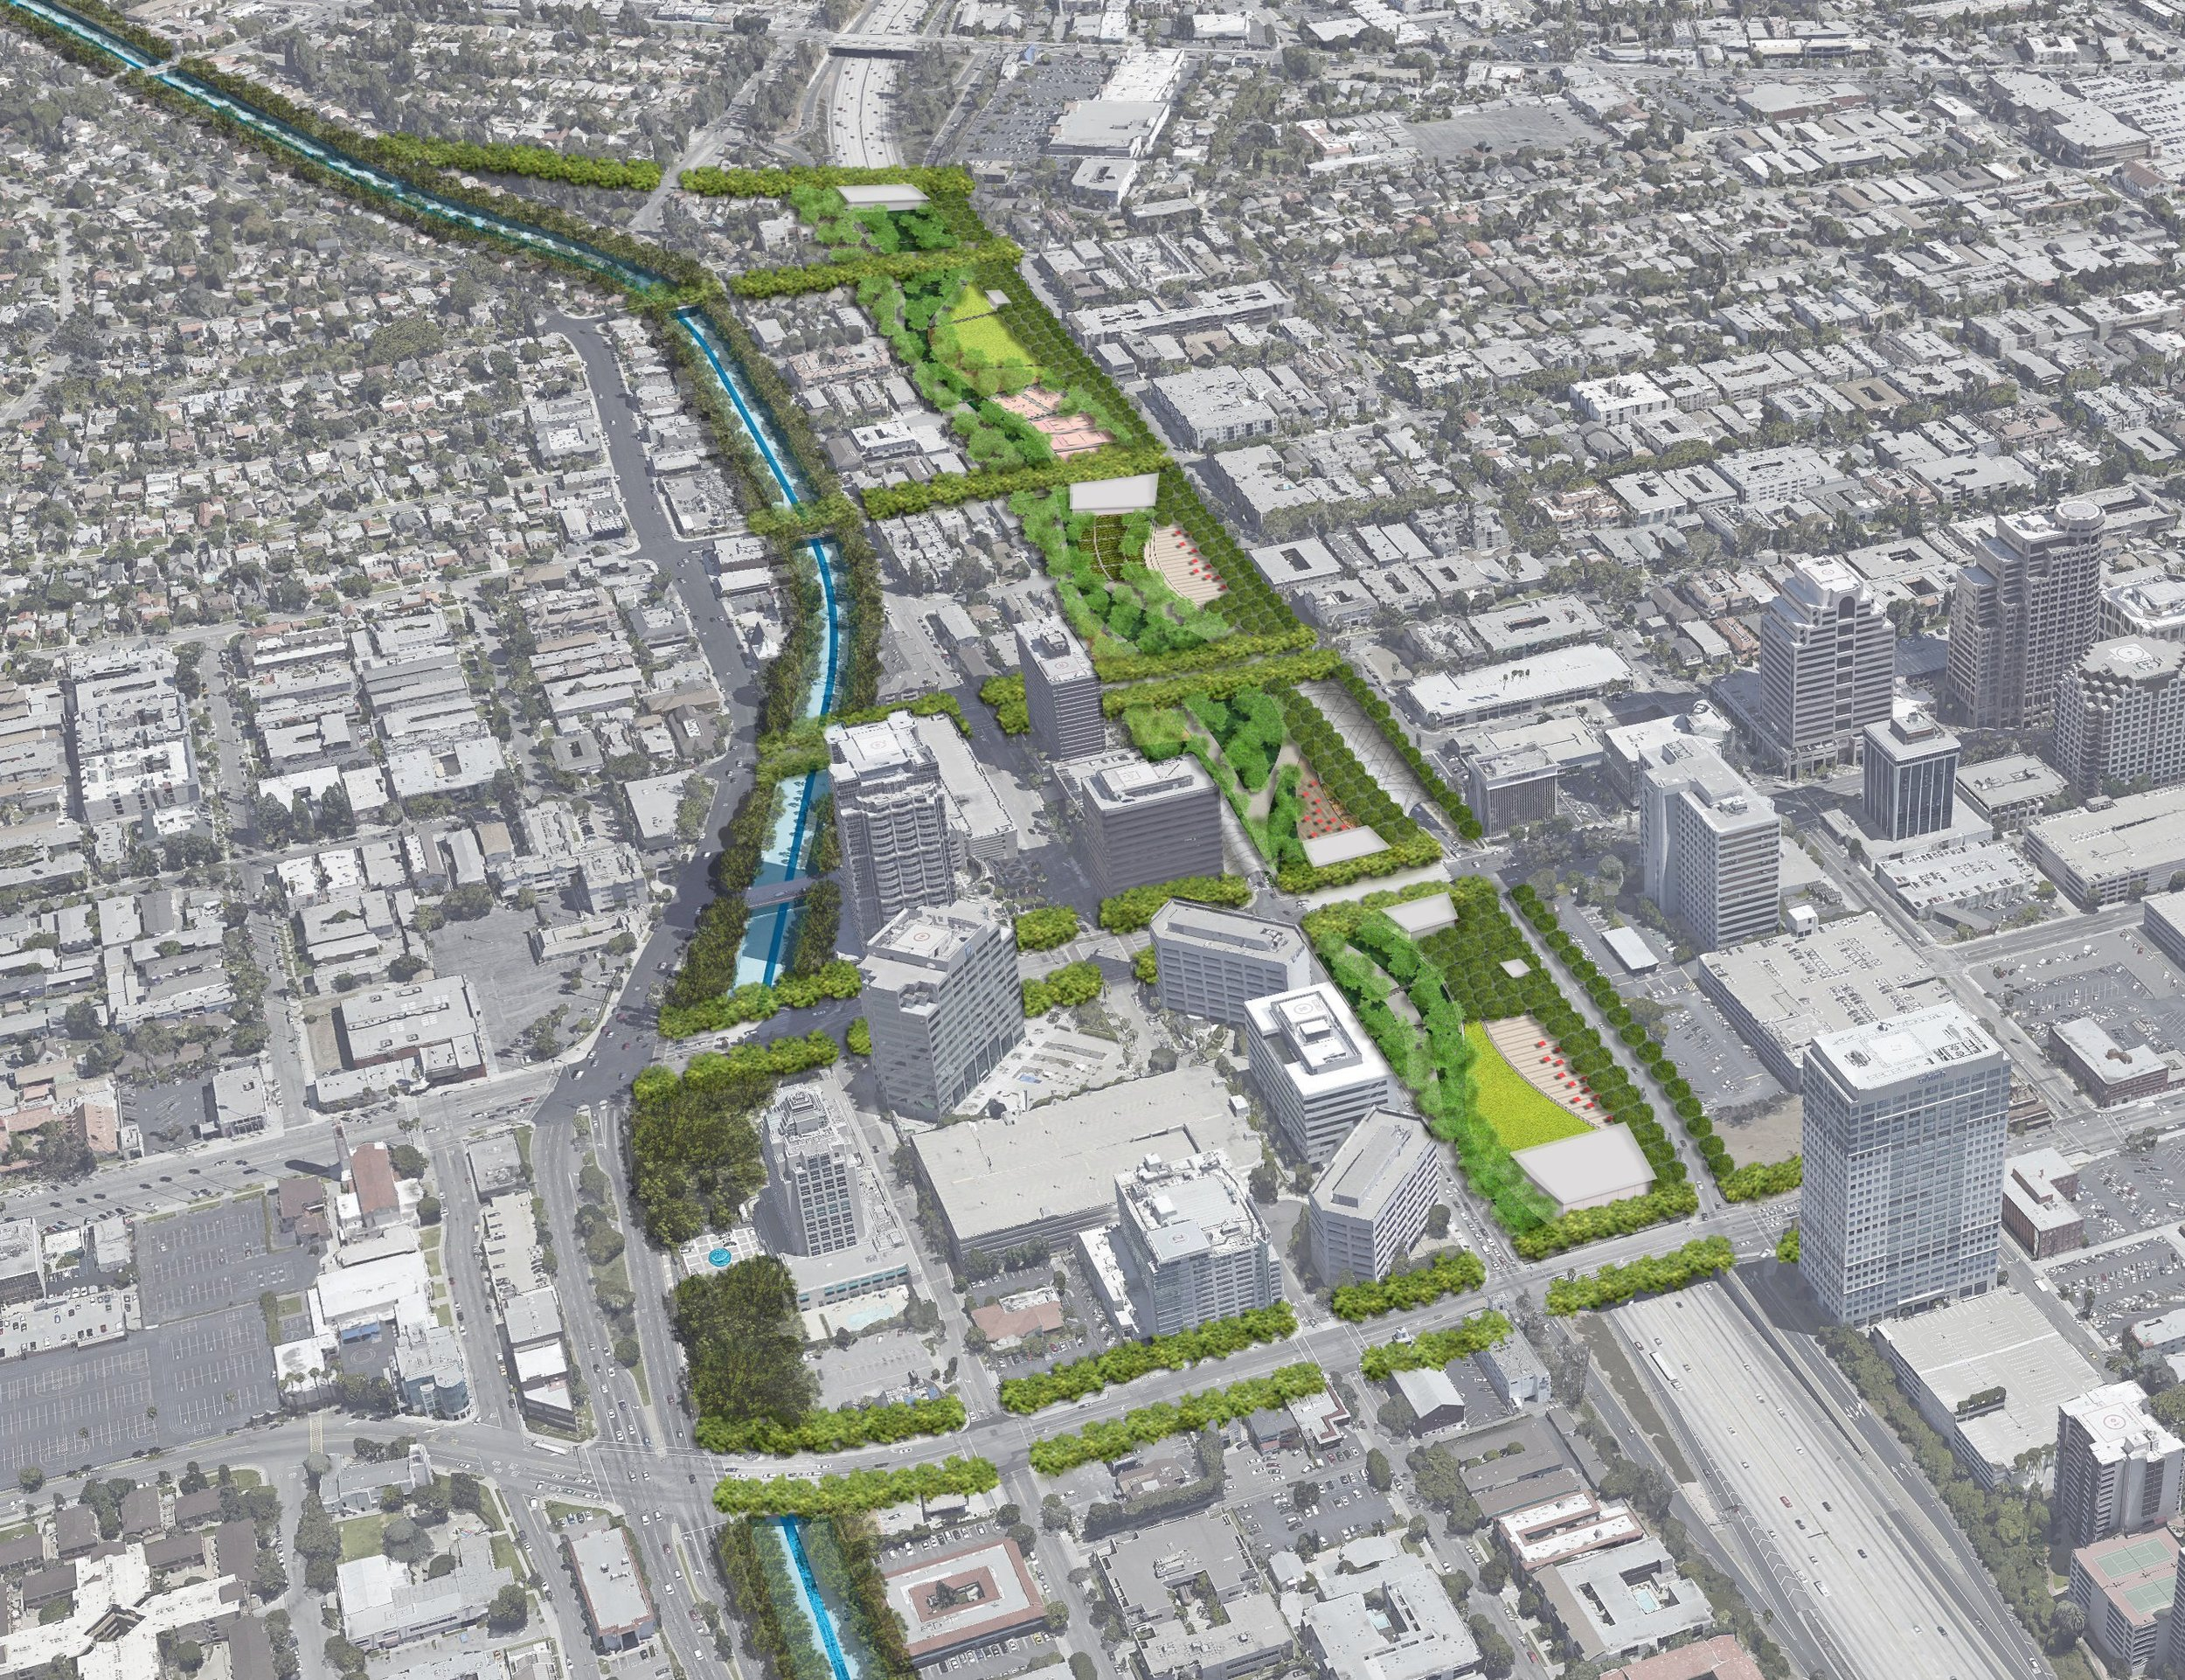 Space 134 Vision Plan - Freeway-to-Park (Glendale, CA)